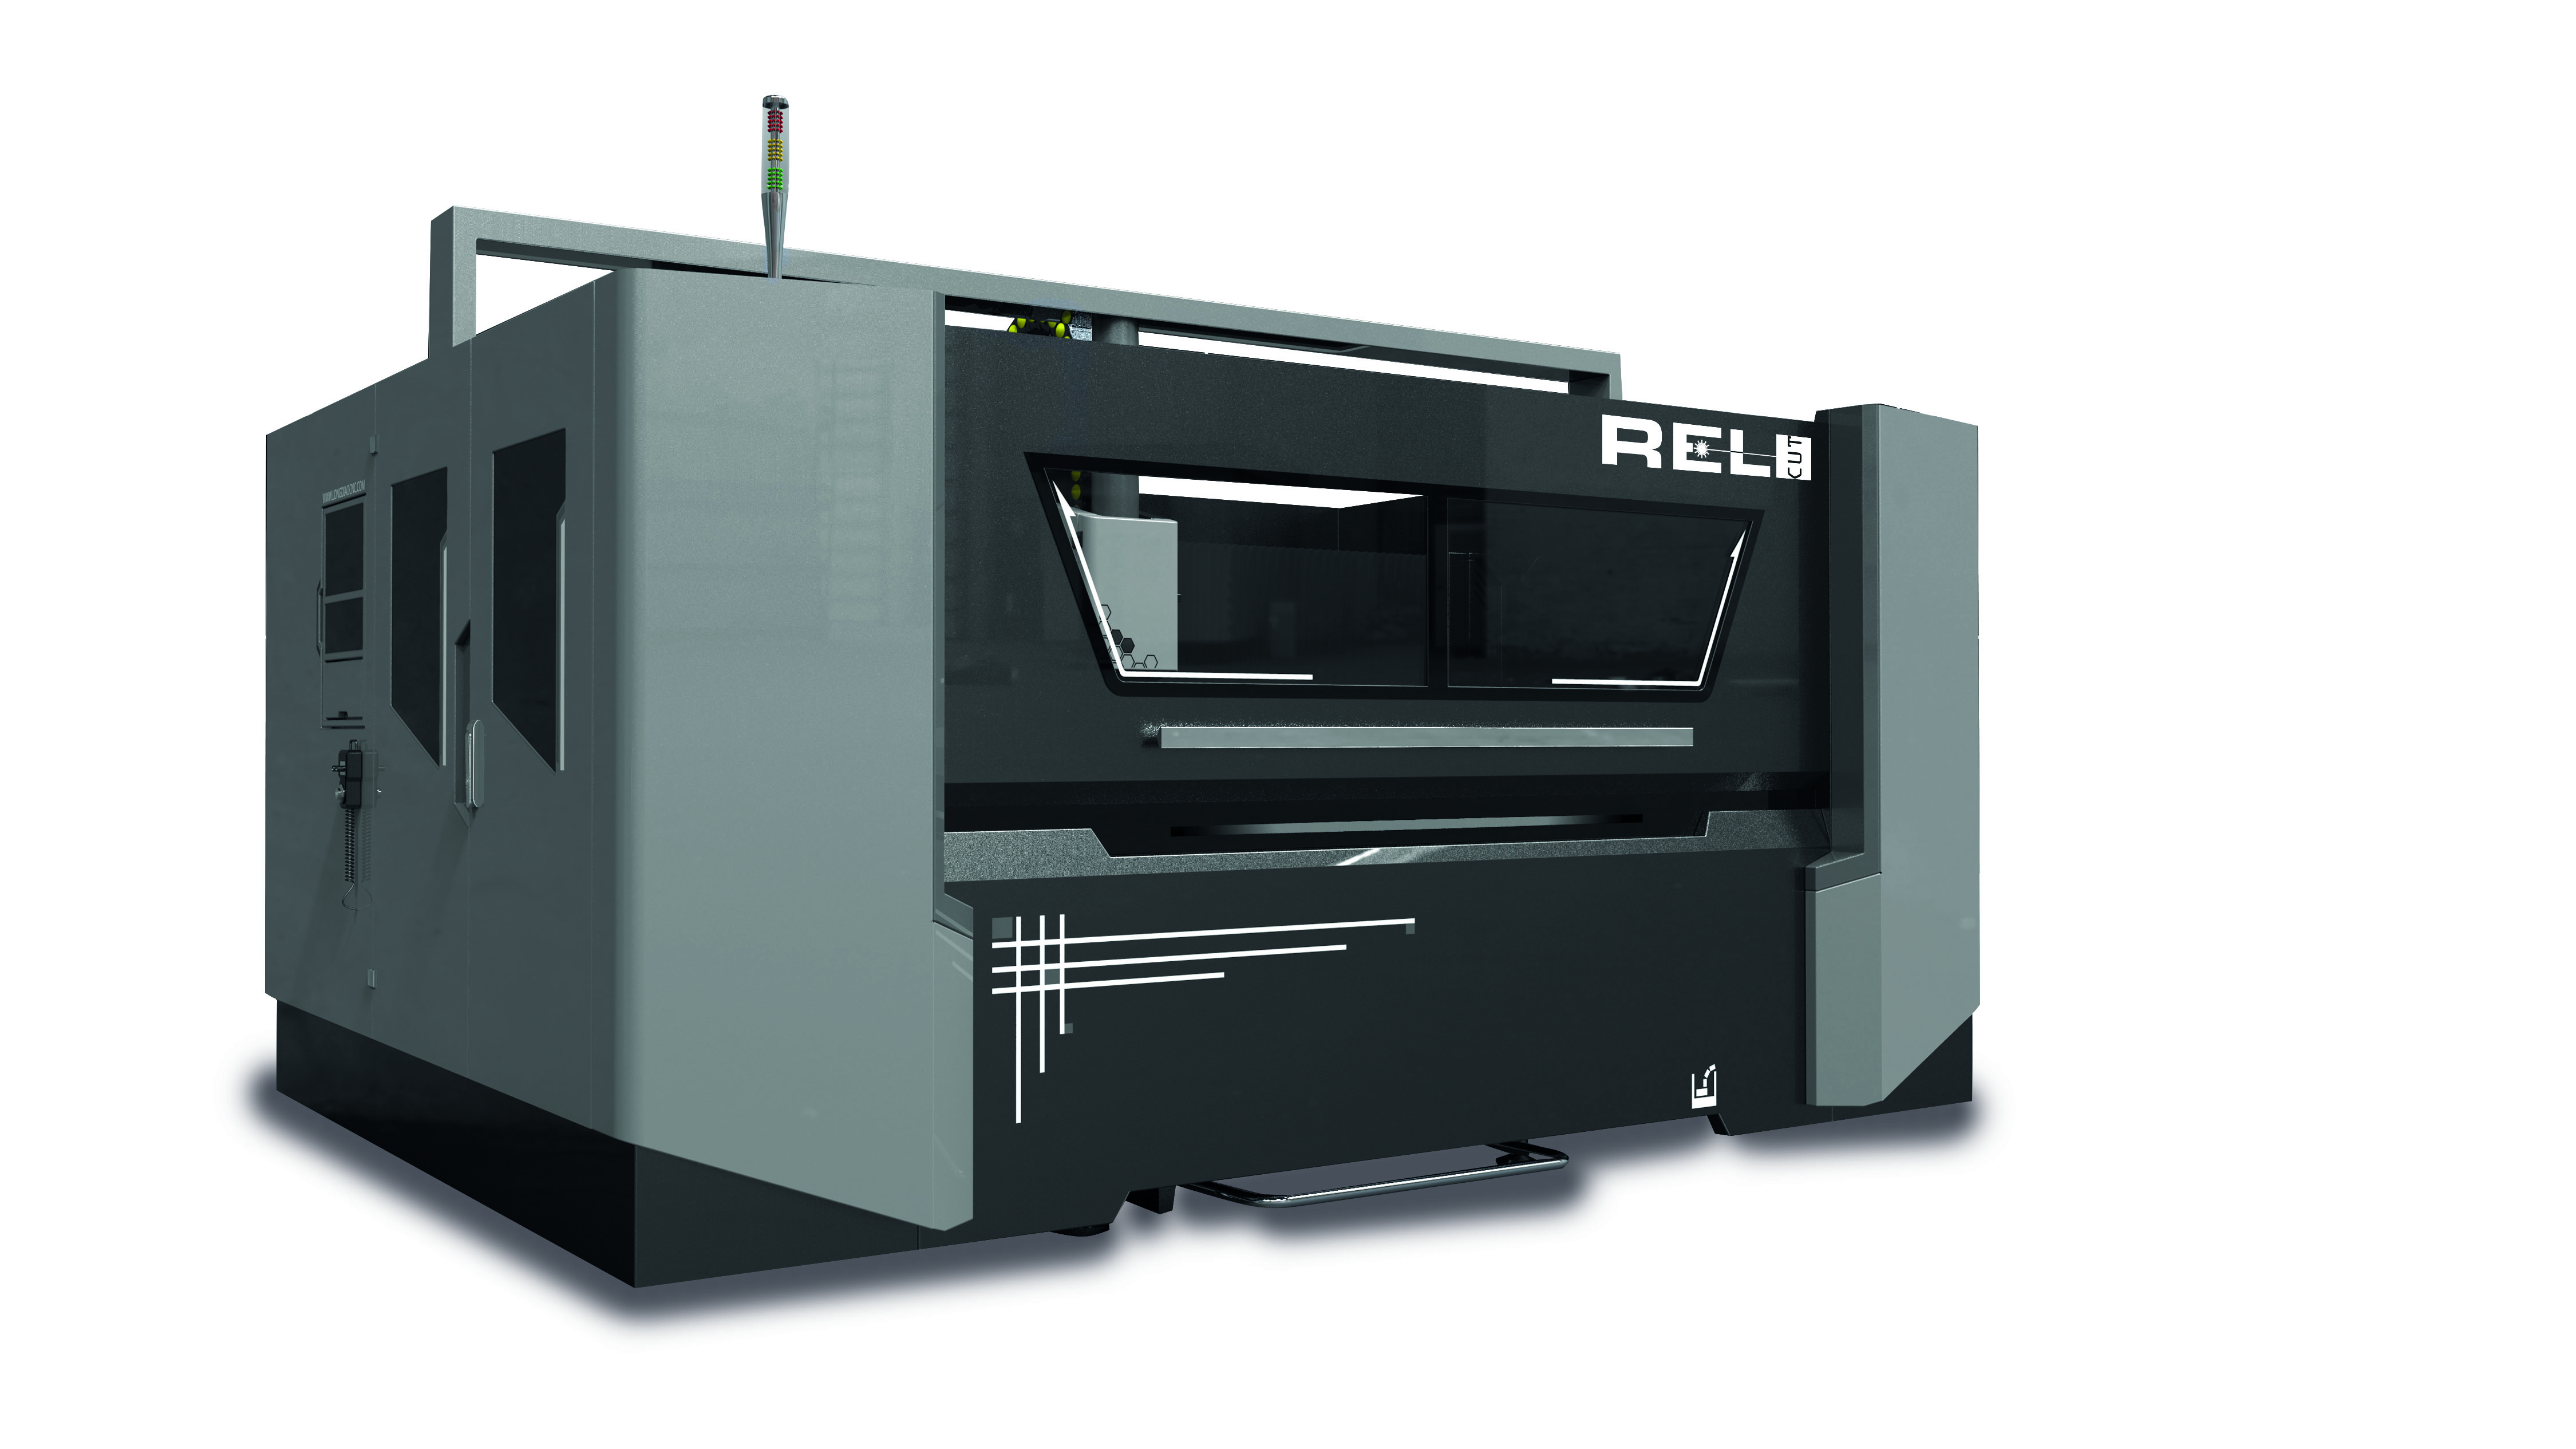 RCT-2513-9500W-K   Covered 3-axis gantry milling machine with